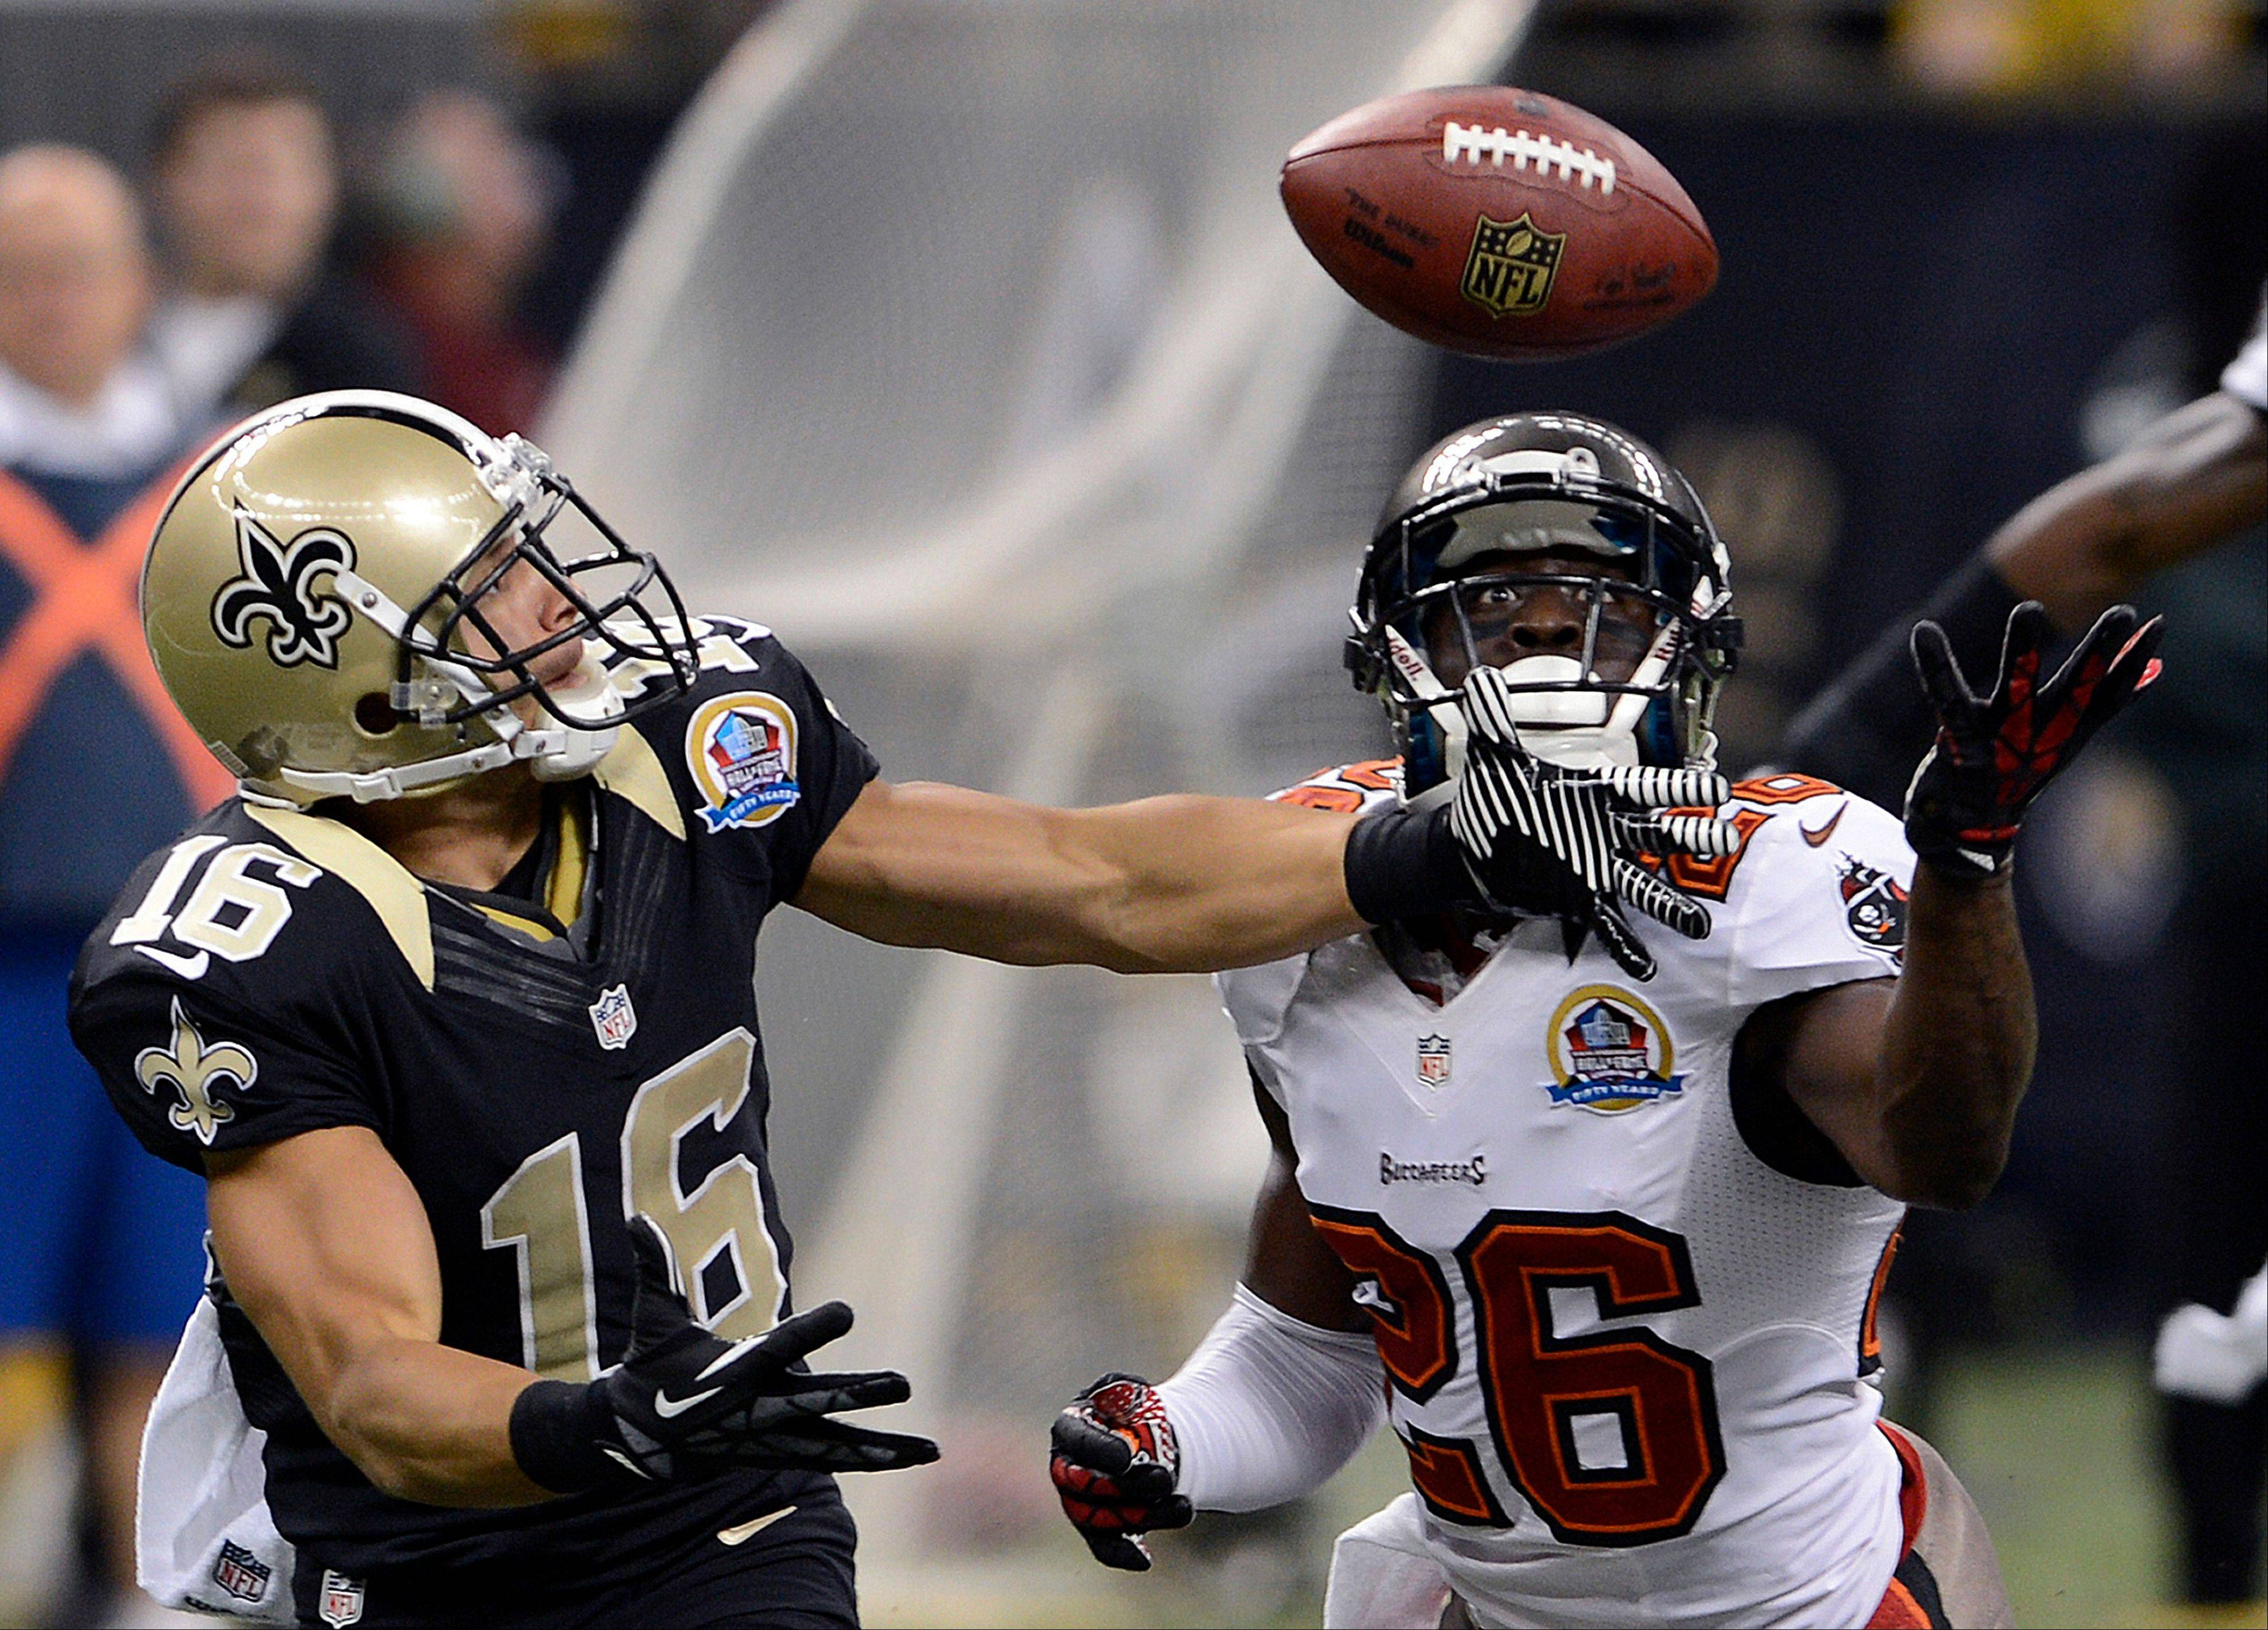 Tampa Bay Buccaneers defensive back Anthony Gaitor (26) breaks up a pass intended for New Orleans Saints wide receiver Lance Moore (16) in the first half at the Mercedes-Benz Superdome in New Orleans, Sunday.